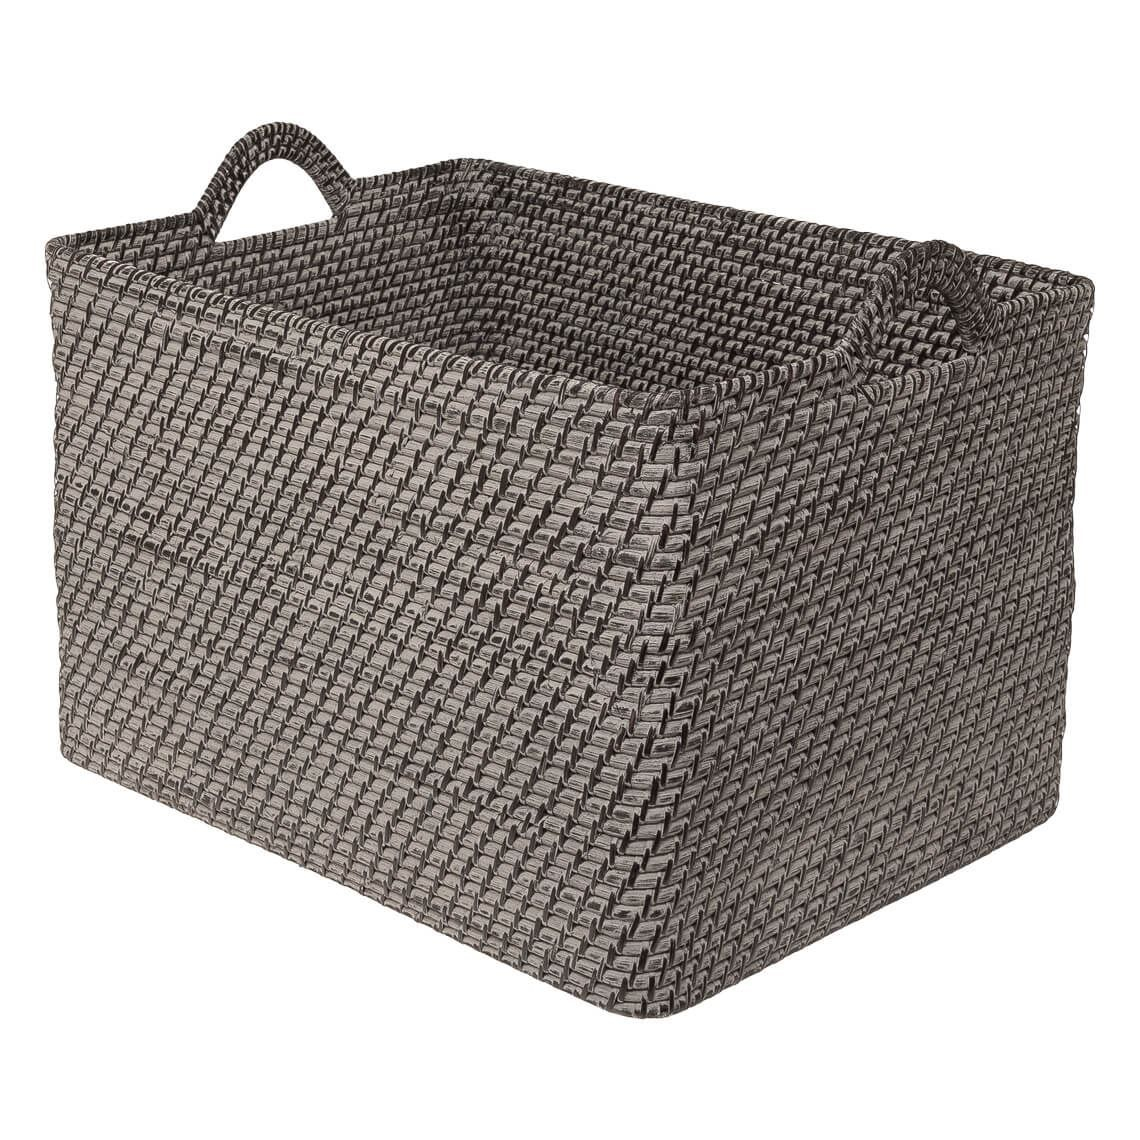 Onito Large Basket Products Large Baskets Storage Basket pertaining to sizing 1140 X 1140